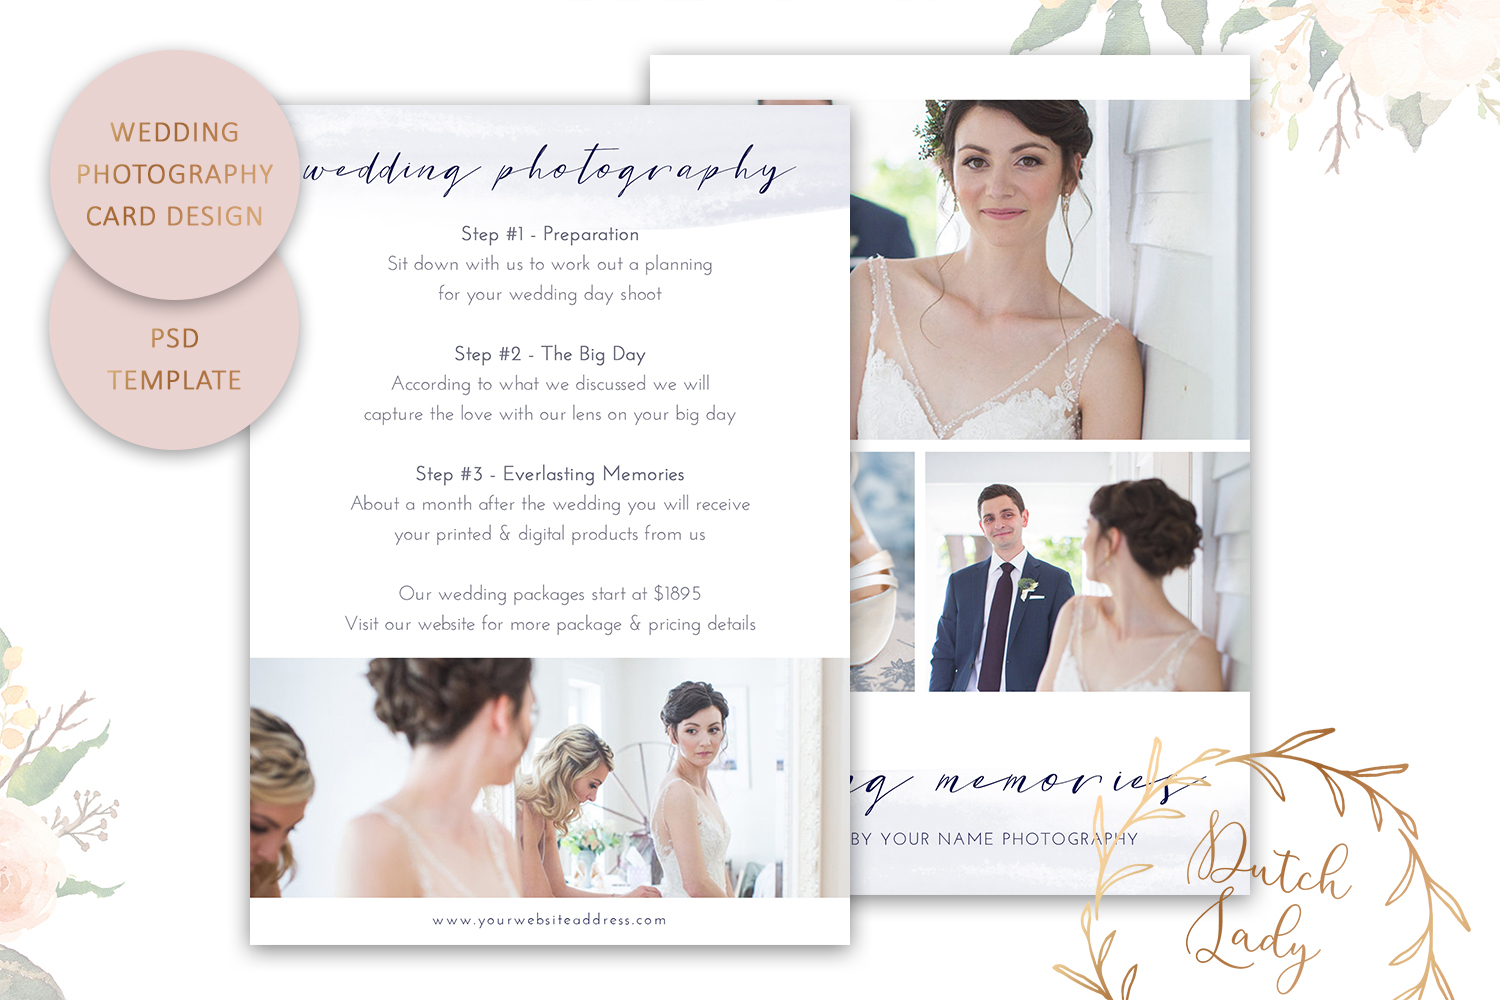 PSD Wedding Photo Session Card - Adobe Photoshop Template #9 - wedding photography pricing guide -